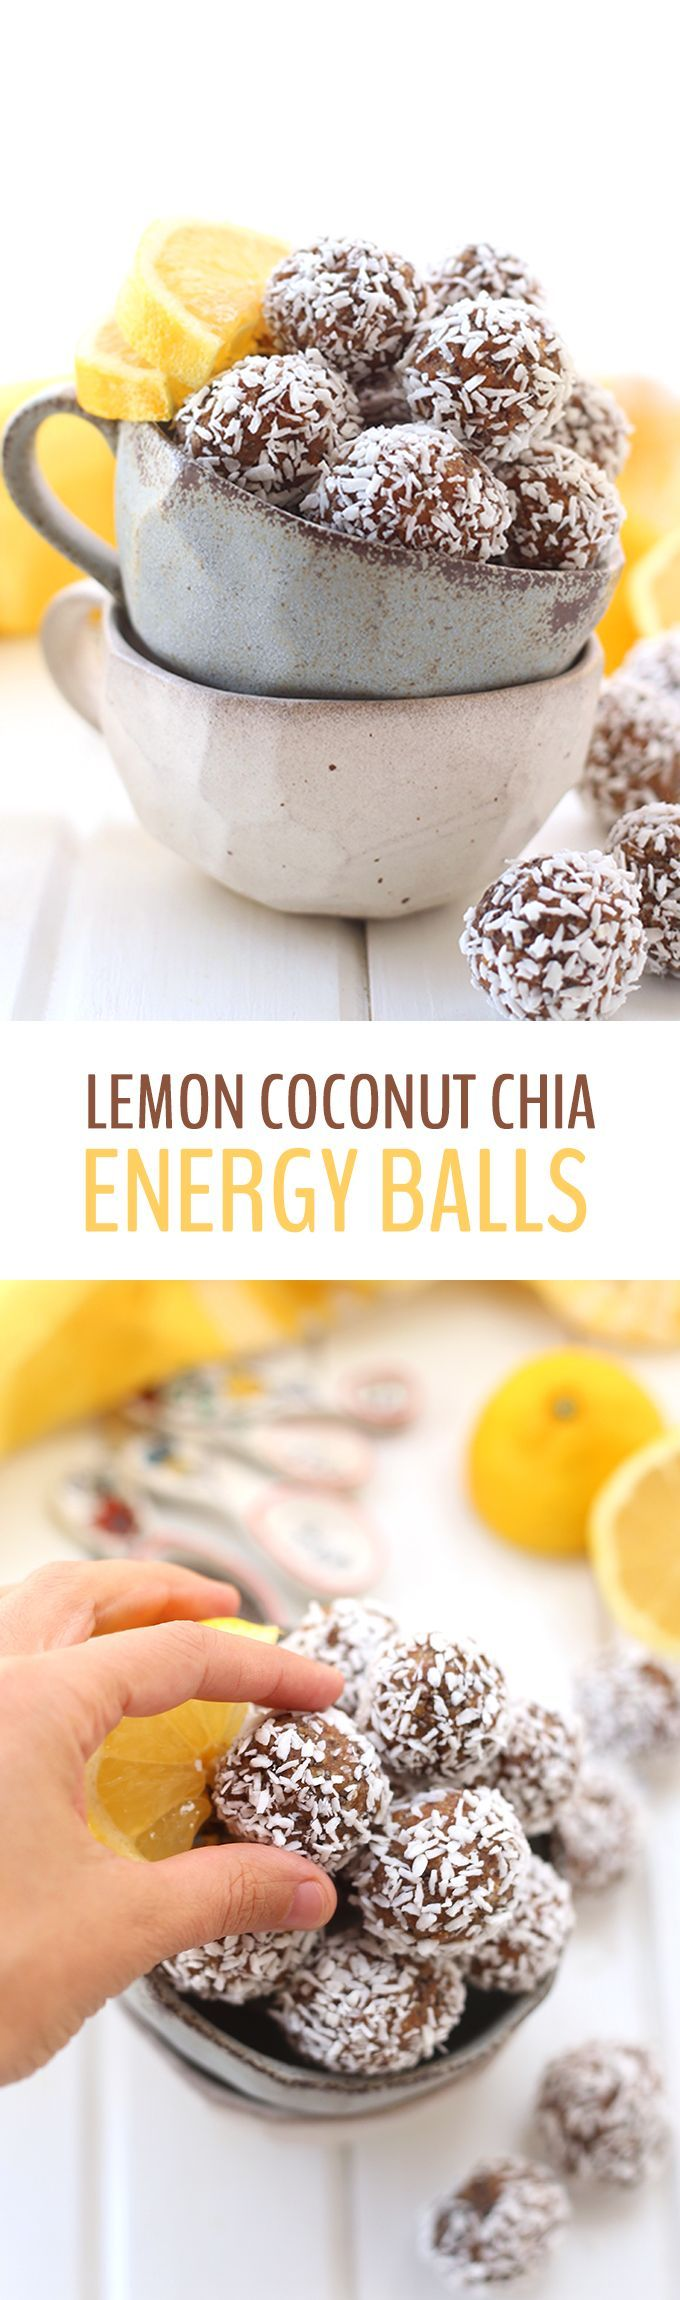 Bring together tart lemon with sweet coconut in these nutrition-packed Lemon Coconut Chia Energy Balls. These portable snacks help you curb your hunger when you need that 3:00 PM pick-me-up!